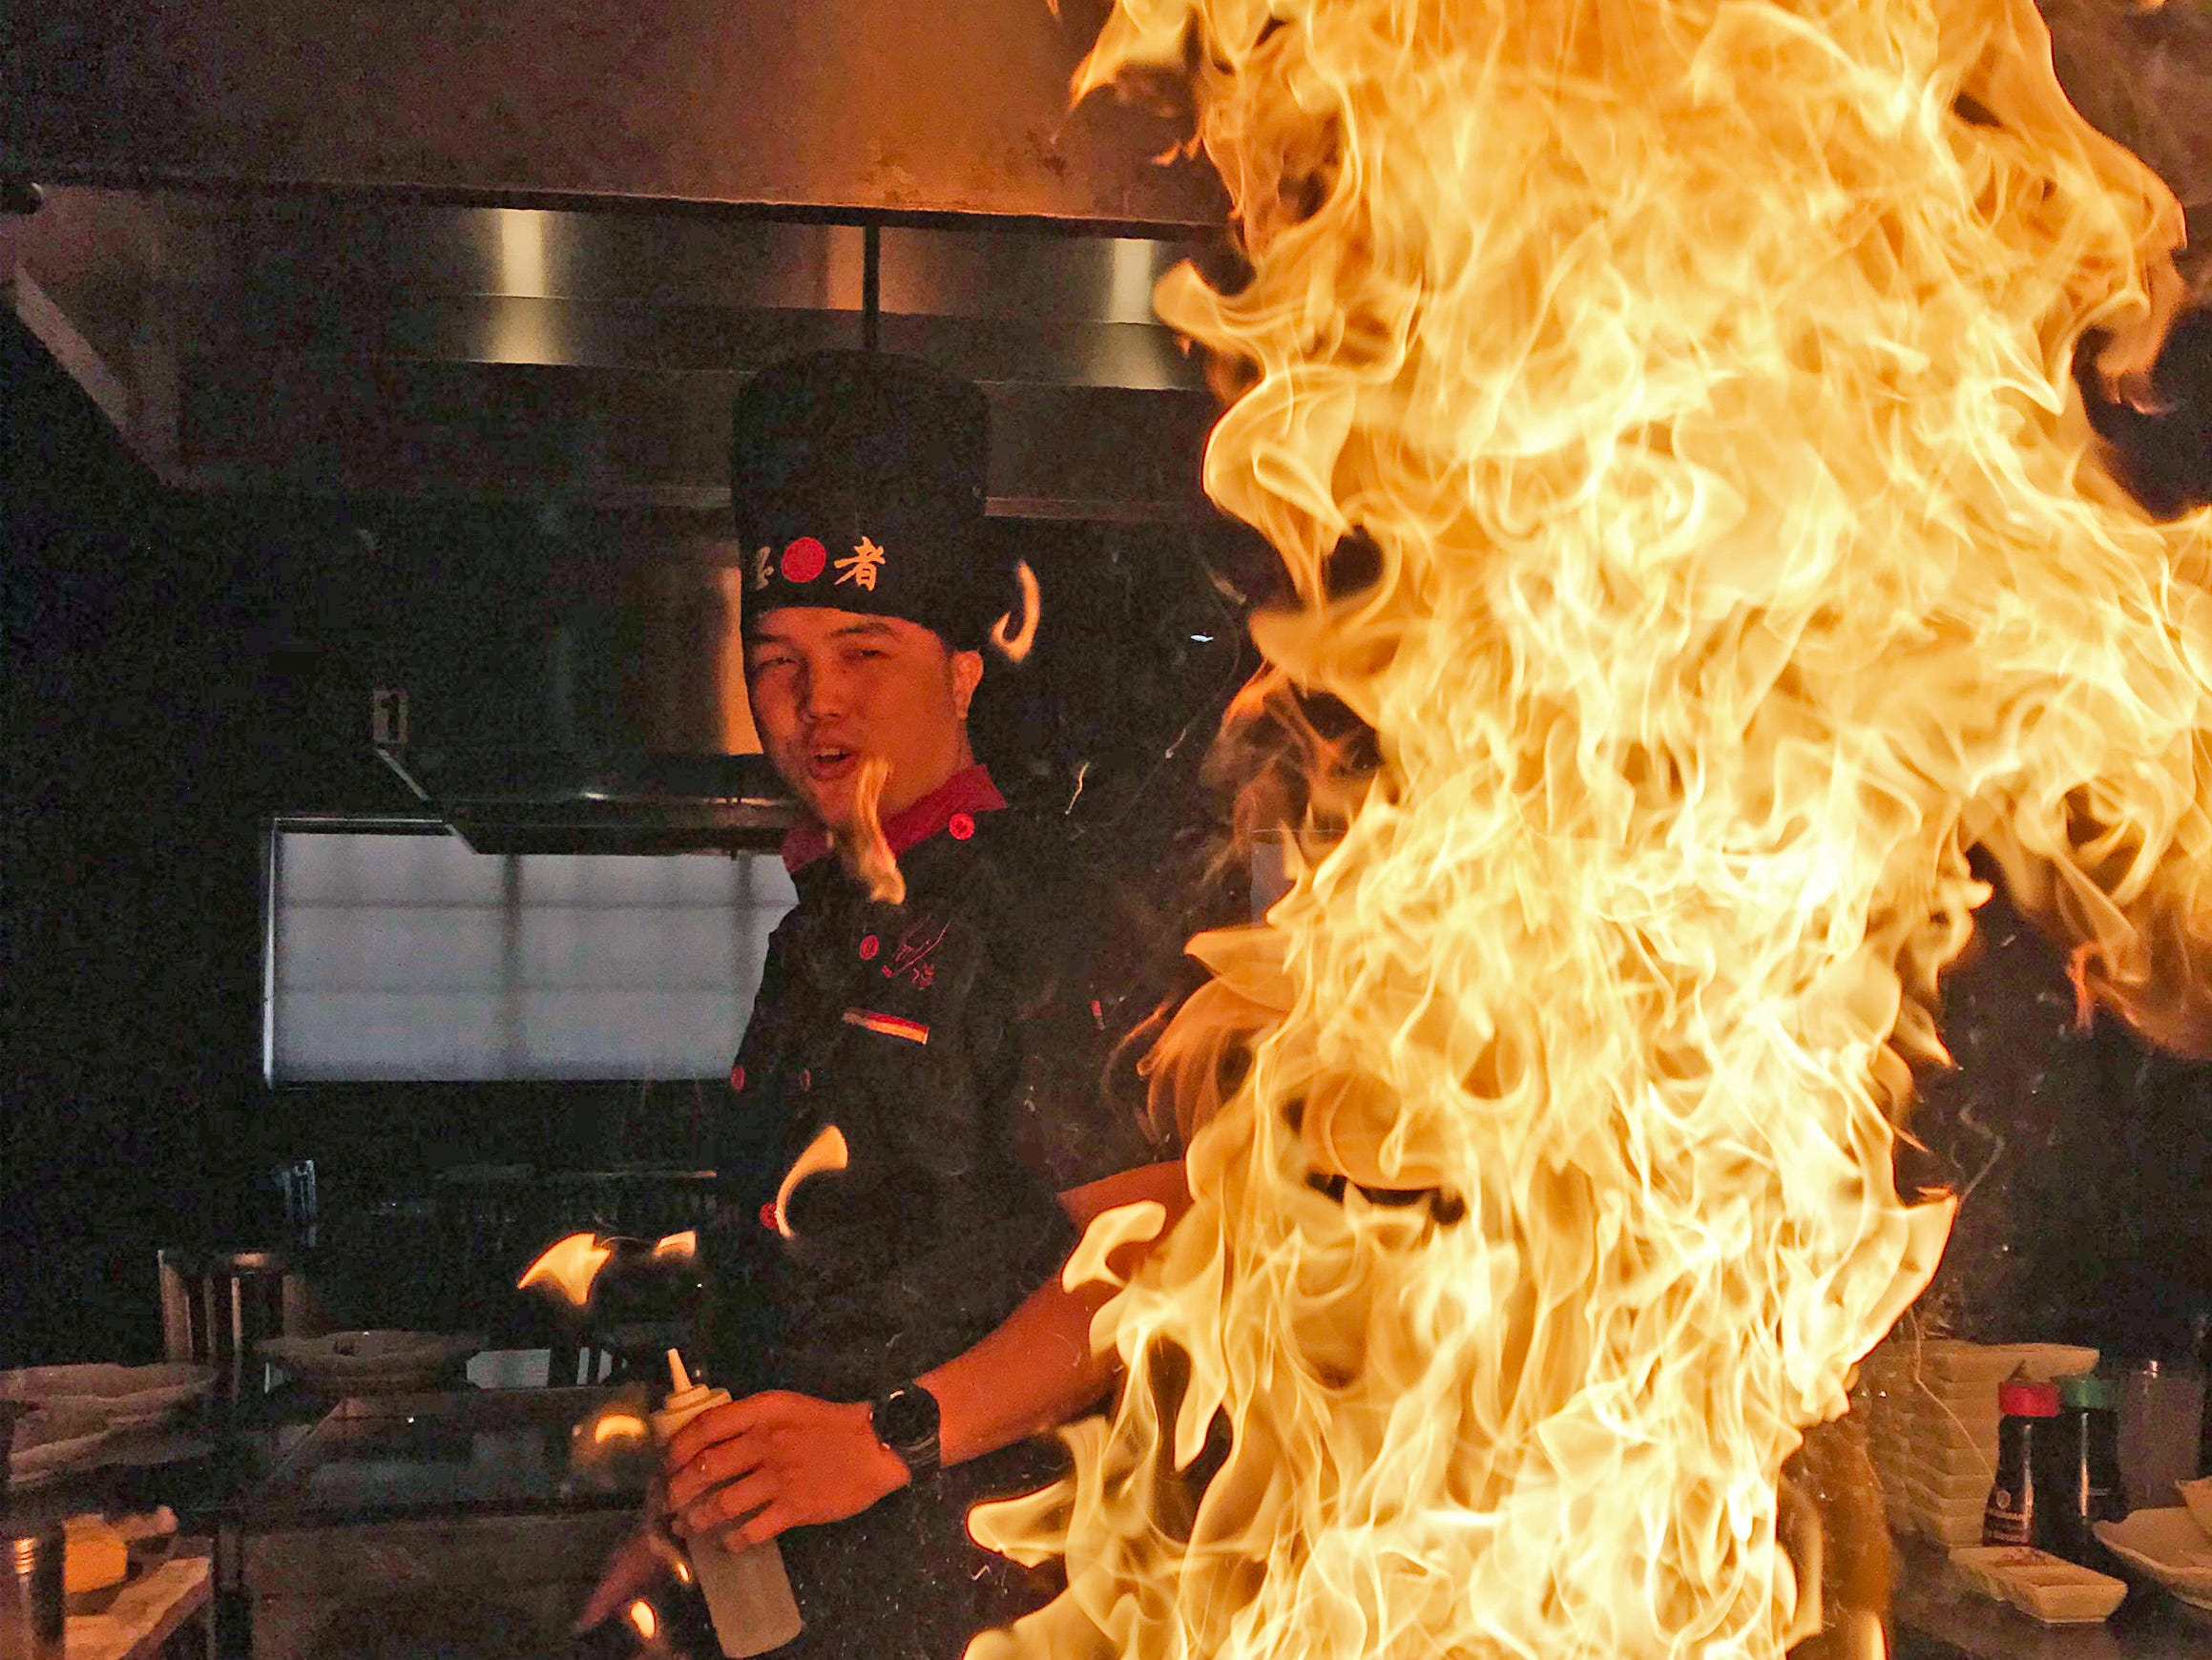 The chef is dwarfed by the flames at the Umi Sushi And Steak House, Thursday, January 31, 2019, in Sheboygan, Wis.